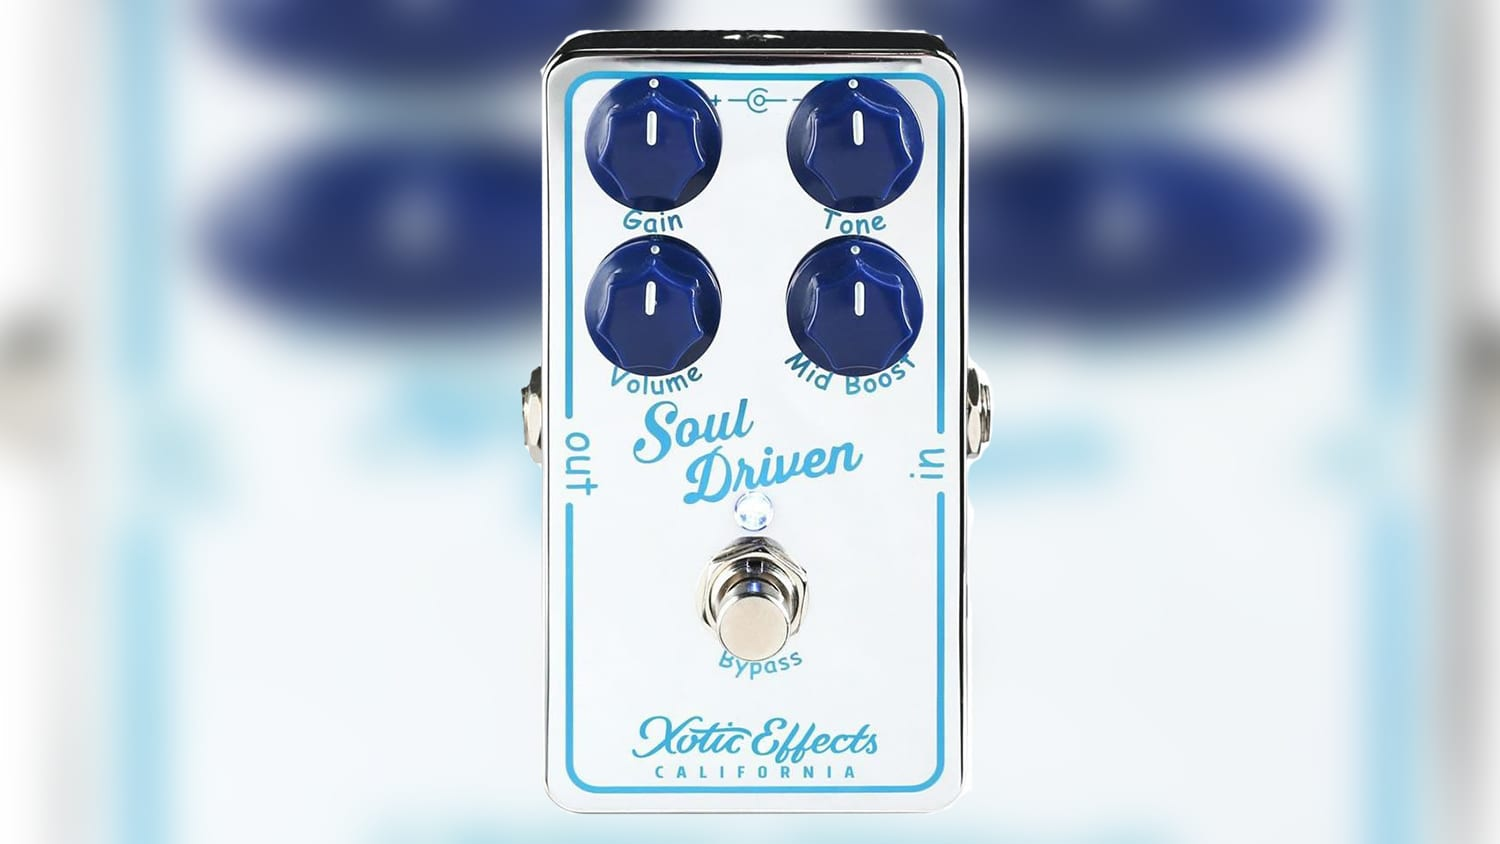 xotic effects soul driven